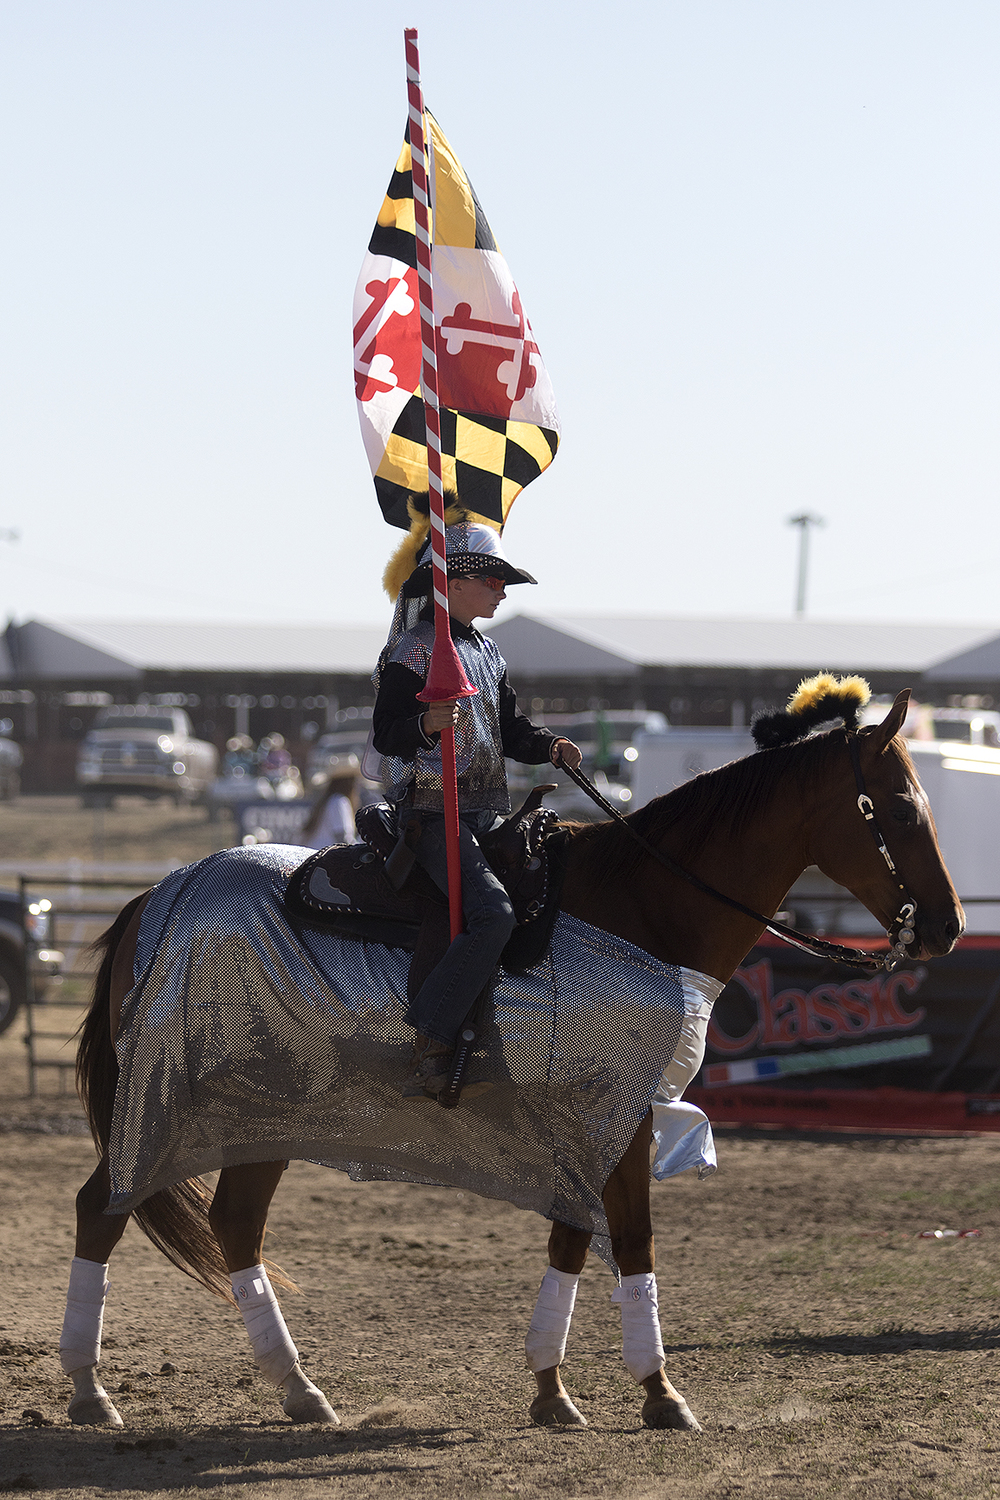 Brittany Coldiron of Team Maryland rides dressed as a knight ready for a jousting match while carrying the flag for Maryland before the Wednesday morning performance of the 2016 National High School Finals Rodeo.